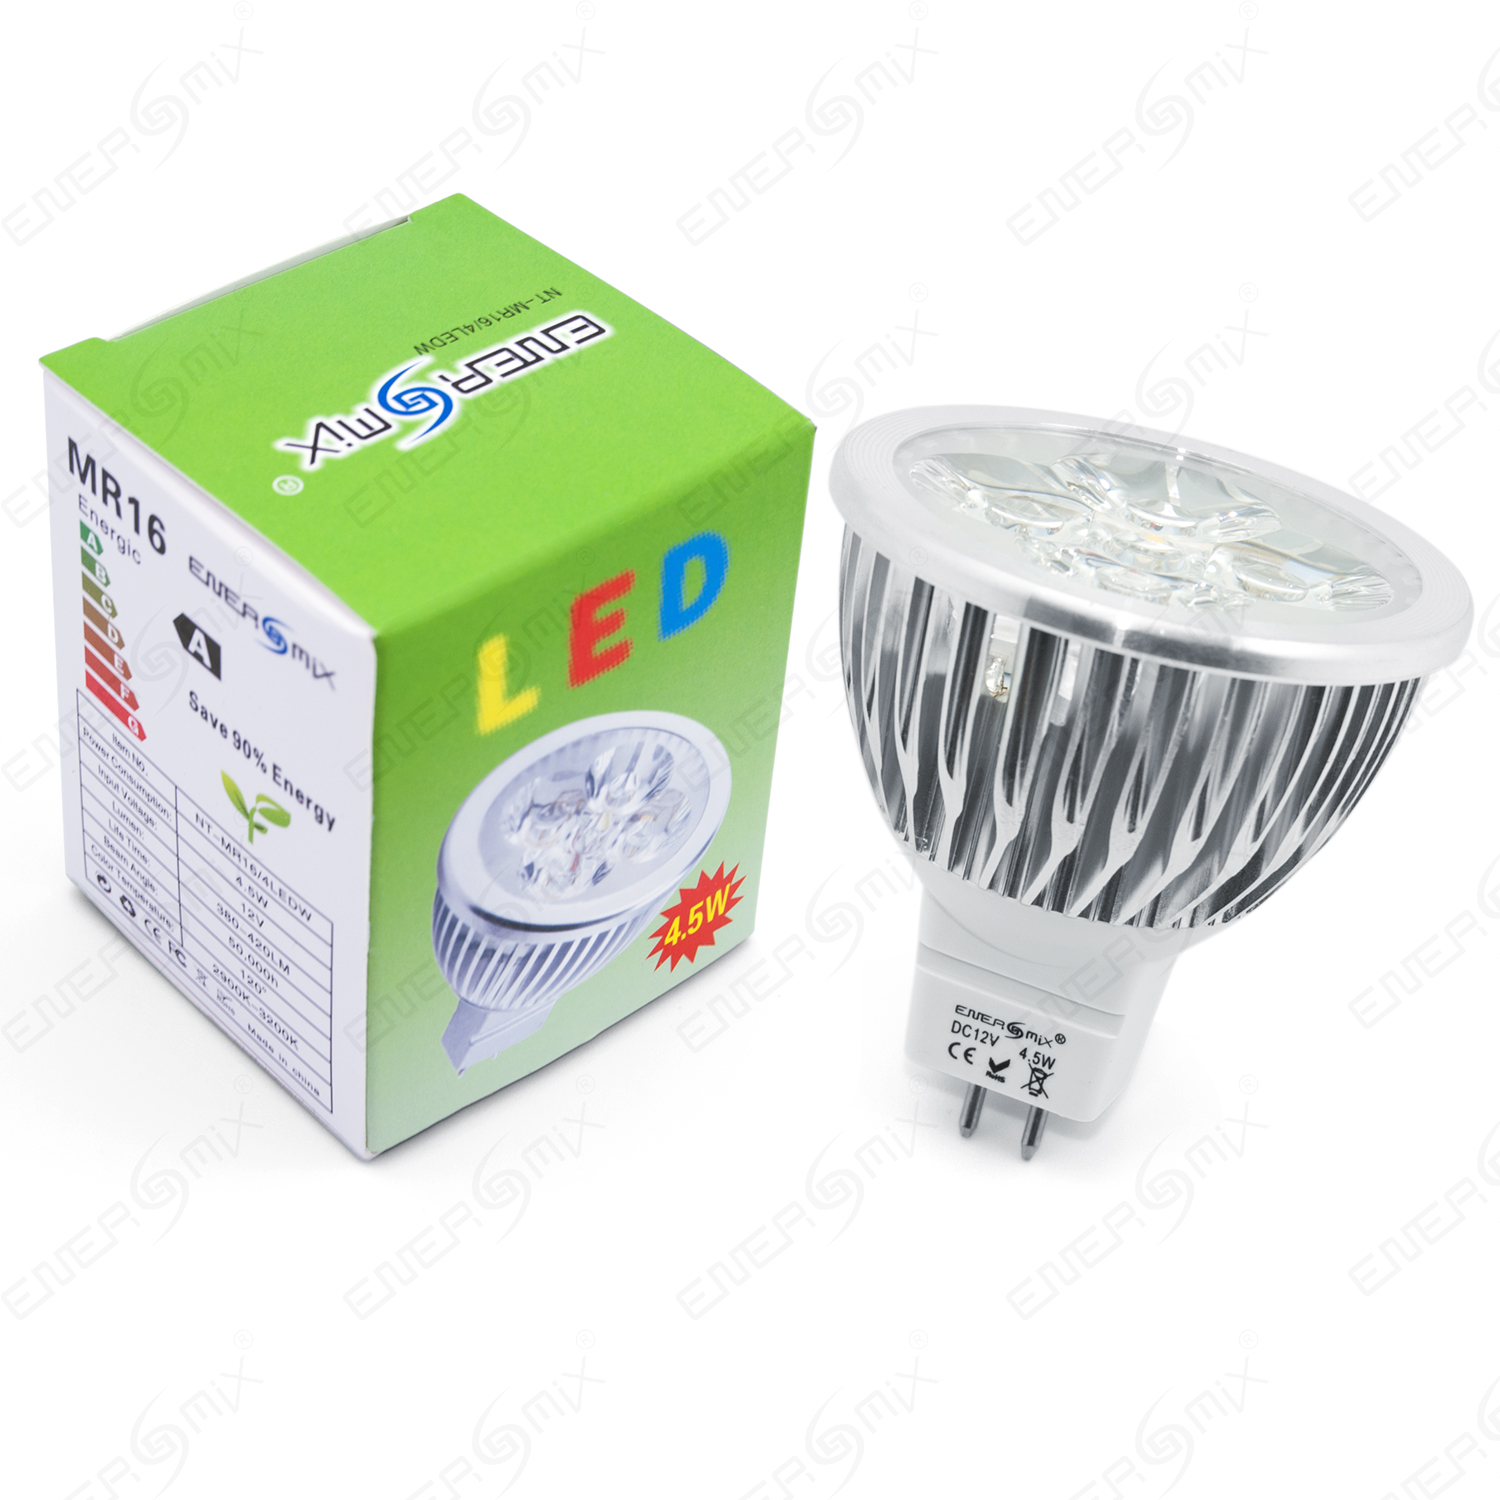 led spot mr16 gu 5 3 spot lampe leuchtmittel sparlampe 12 volt 4 5w. Black Bedroom Furniture Sets. Home Design Ideas